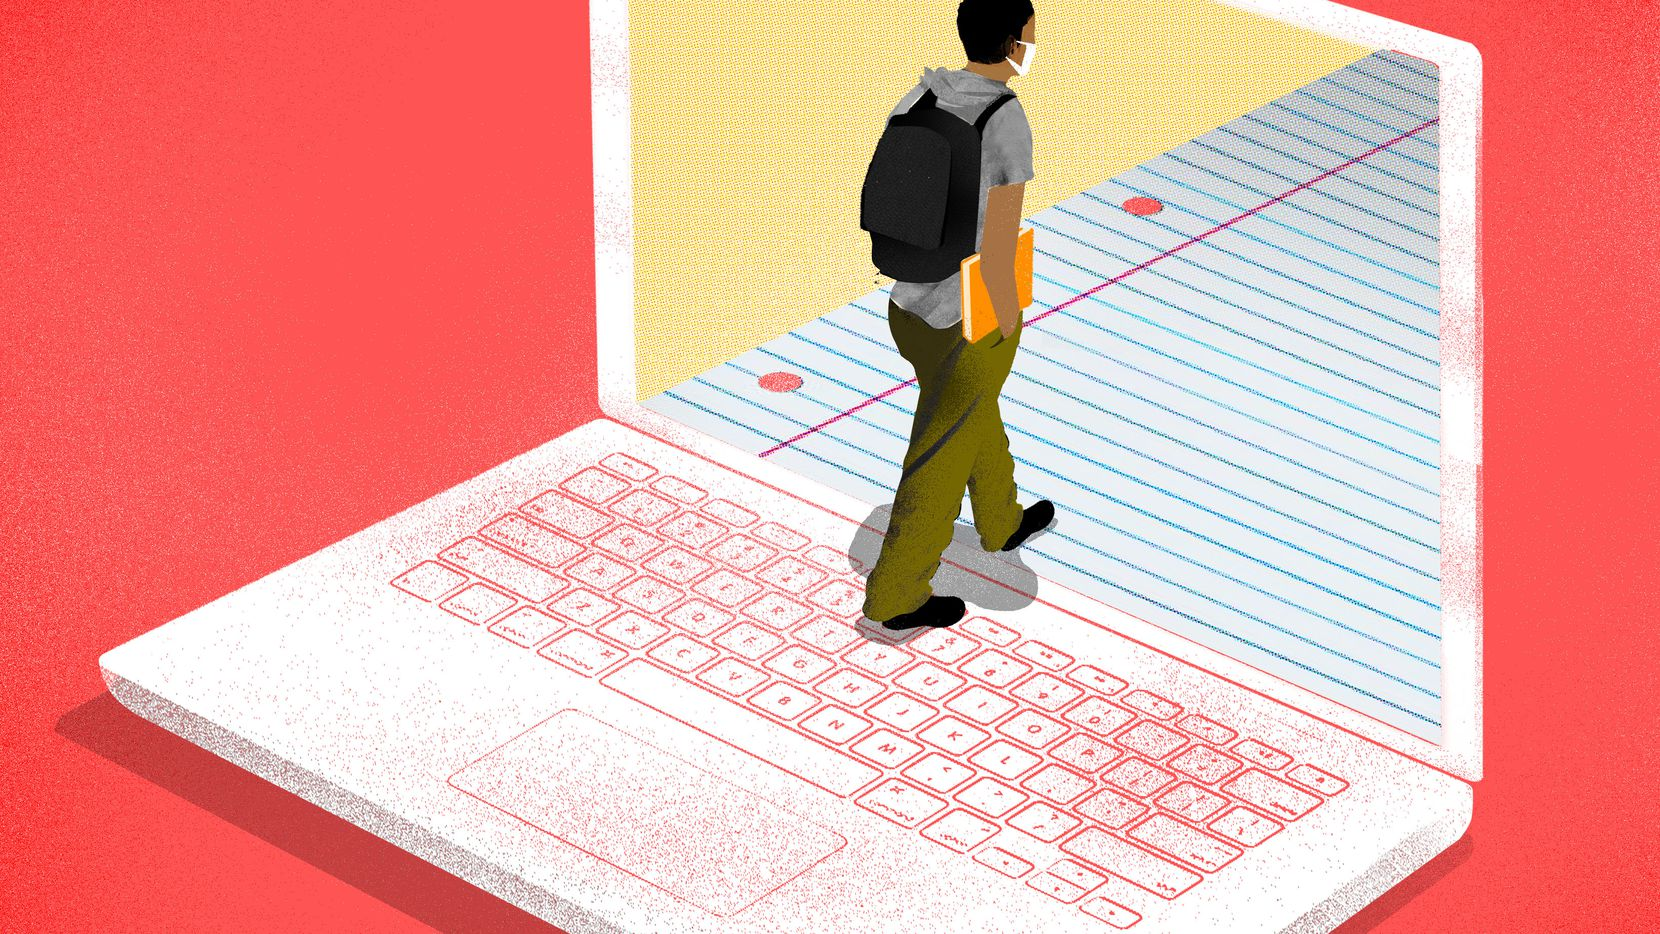 Back to Class: How schools can rebound. The Dallas Morning News' Education Lab joined newsrooms across the country to highlight promising ways to help students make up loss ground from the pandemic.